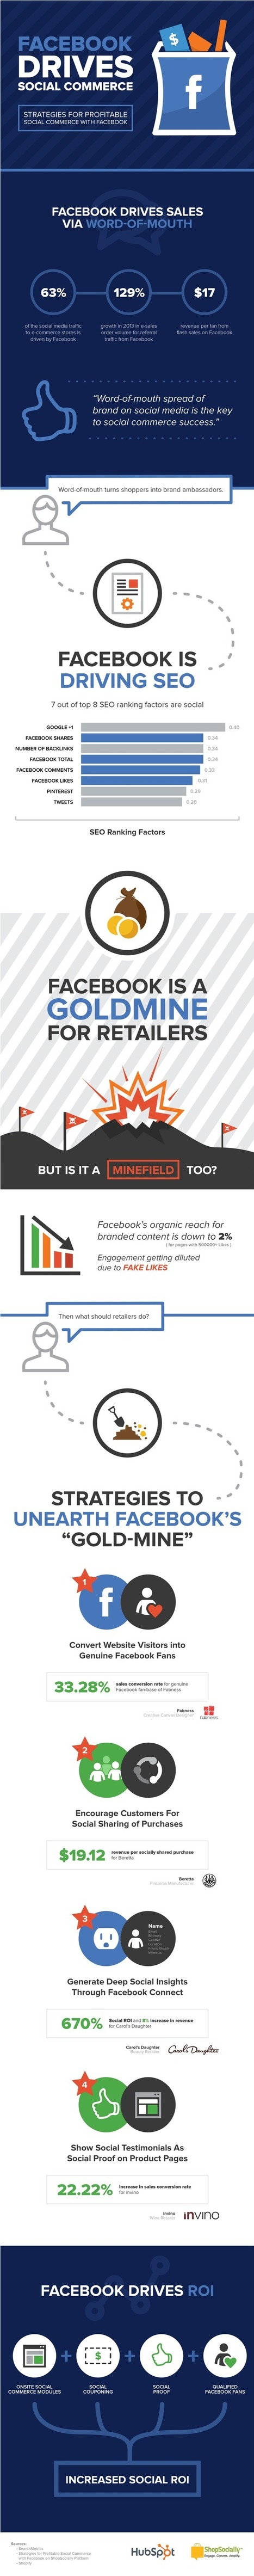 Facebook Drives Social Commerce - Infographic | Social Media Strategy | Scoop.it